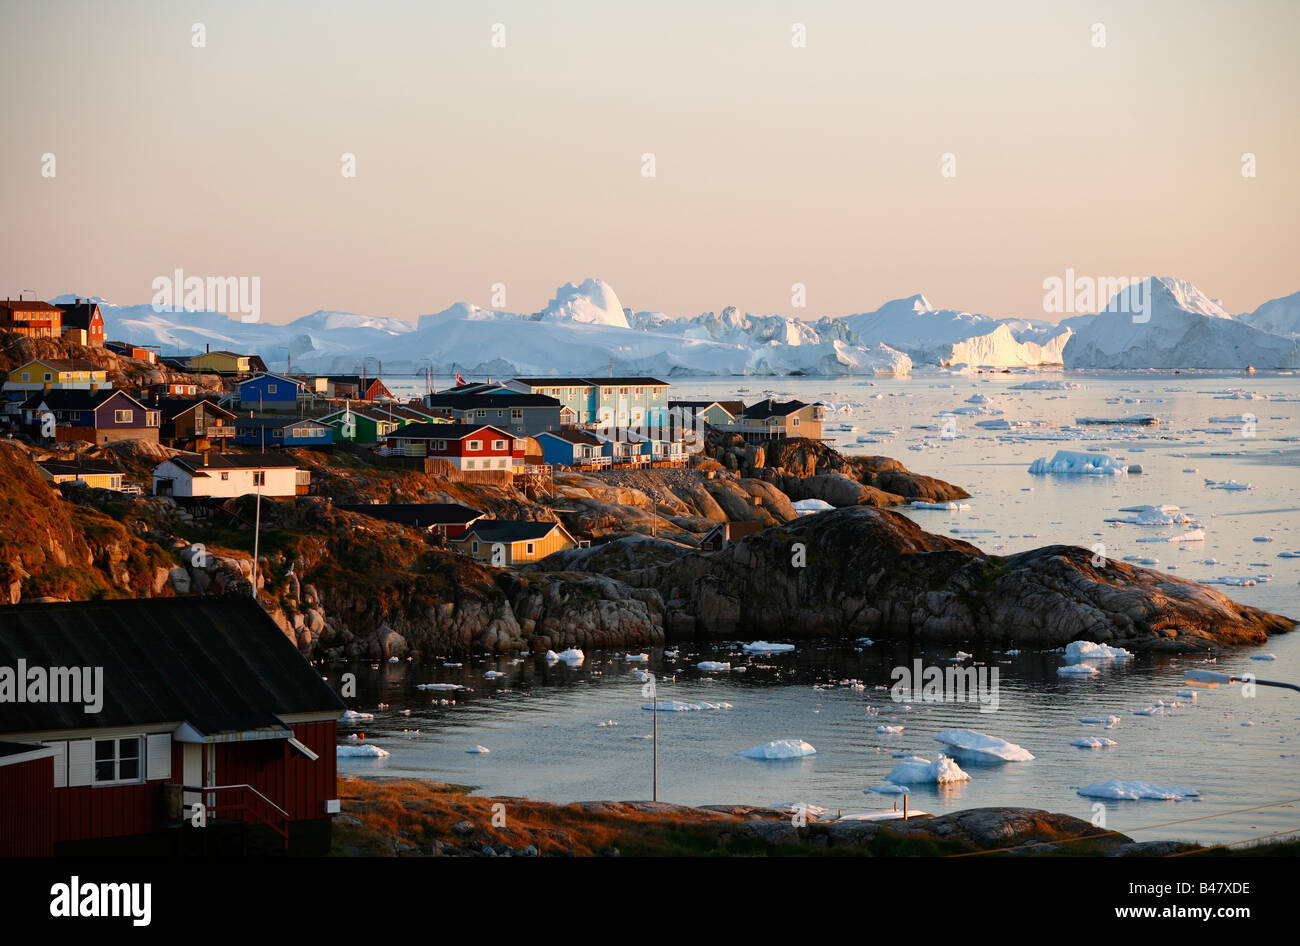 Aug 2008 - A view over houses and the Ilulissat Kangerlua Glacier also known as Sermeq Kujalleq Ilulissat Disko Stock Photo